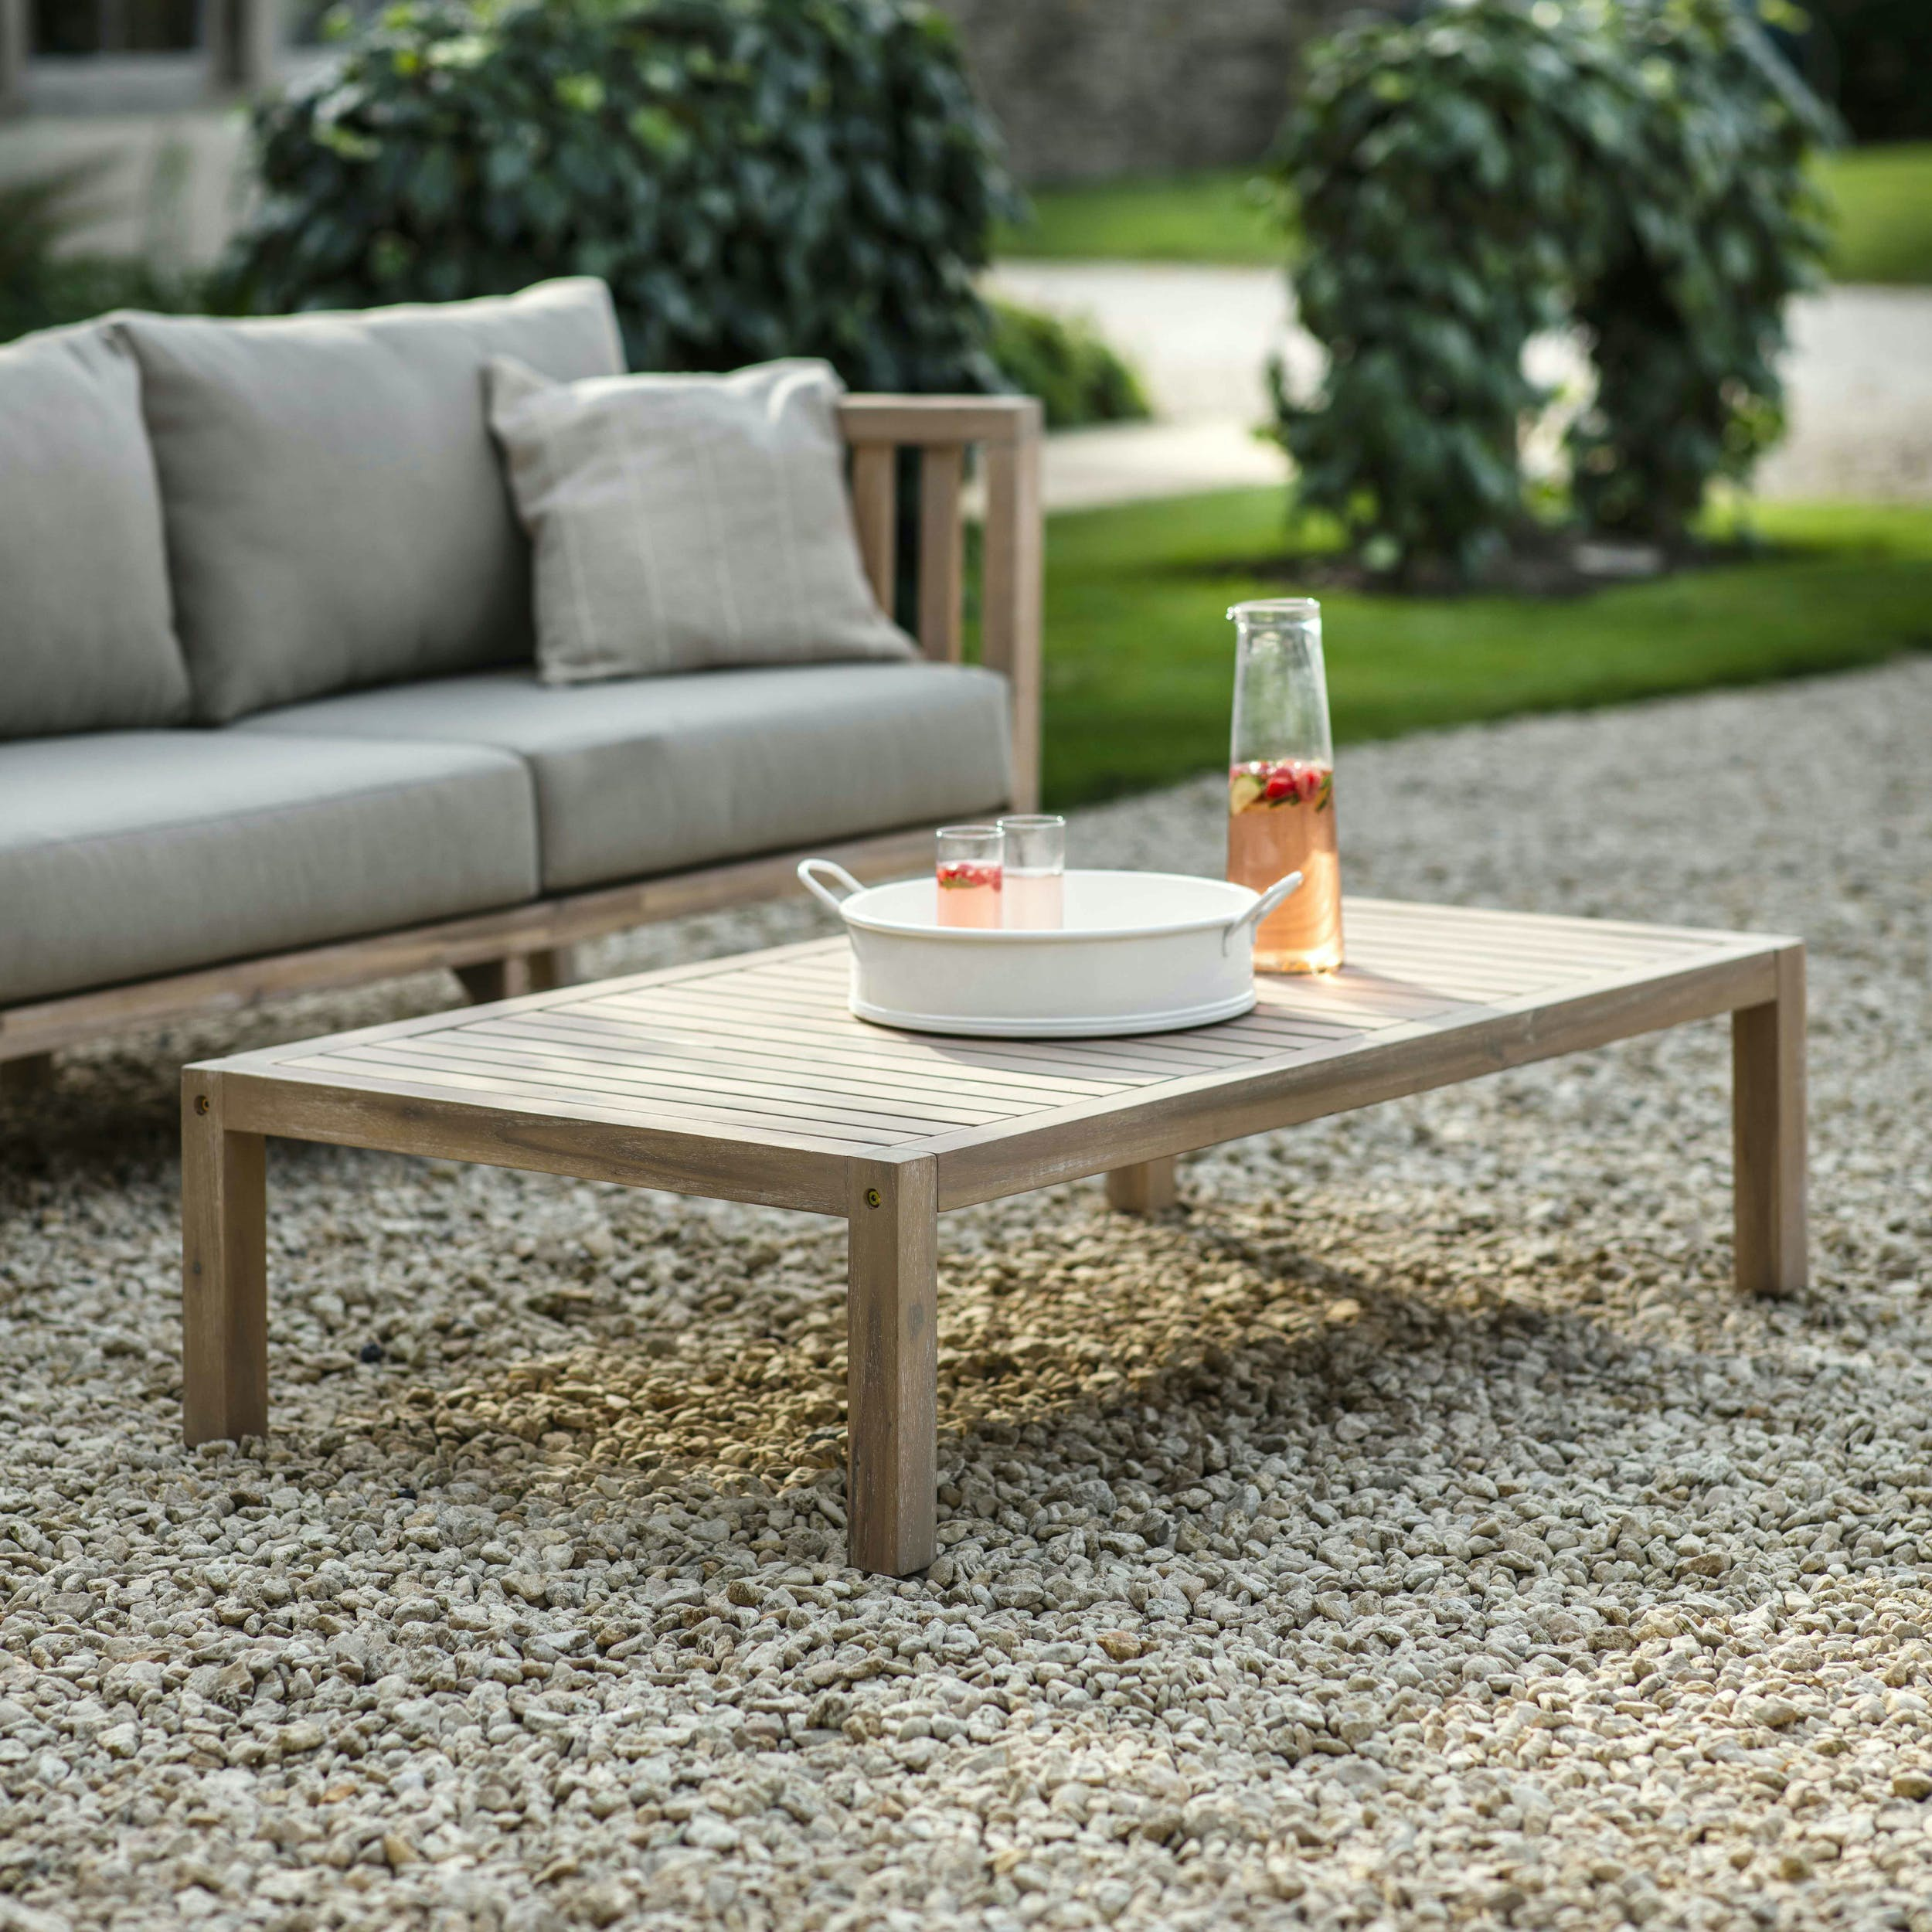 Wooden Porthallow Outdoor Coffee Table